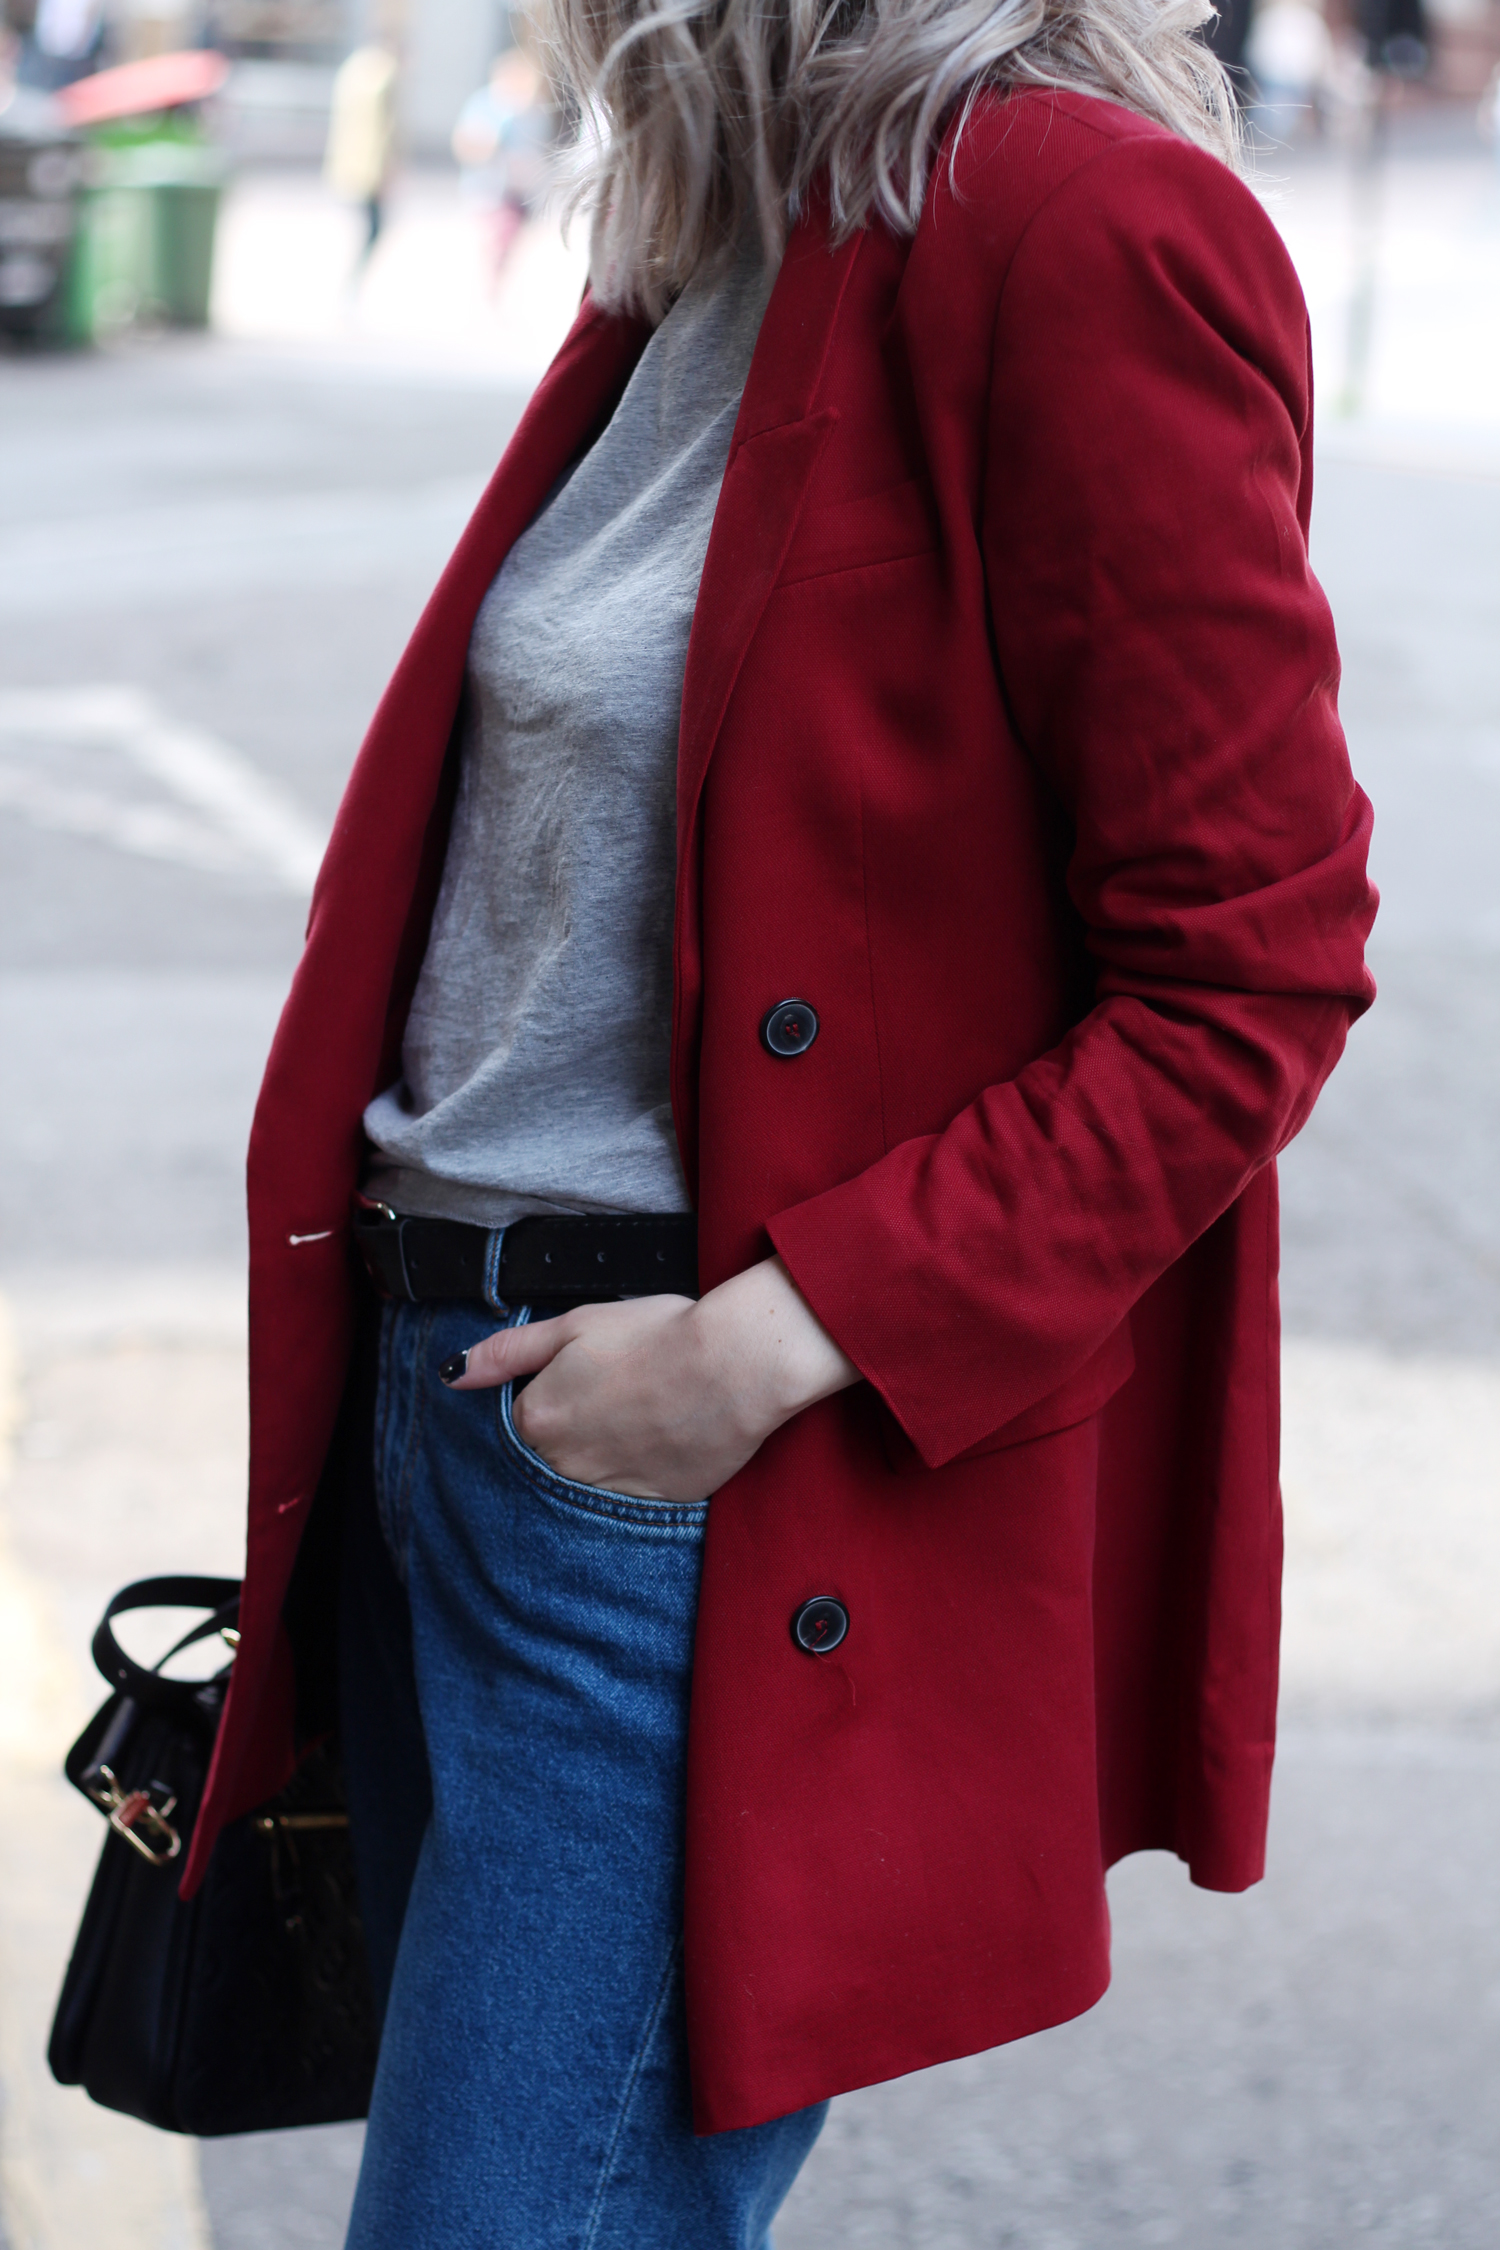 zara-red-blazer-mom-jeans-louis-mochette-metis-14